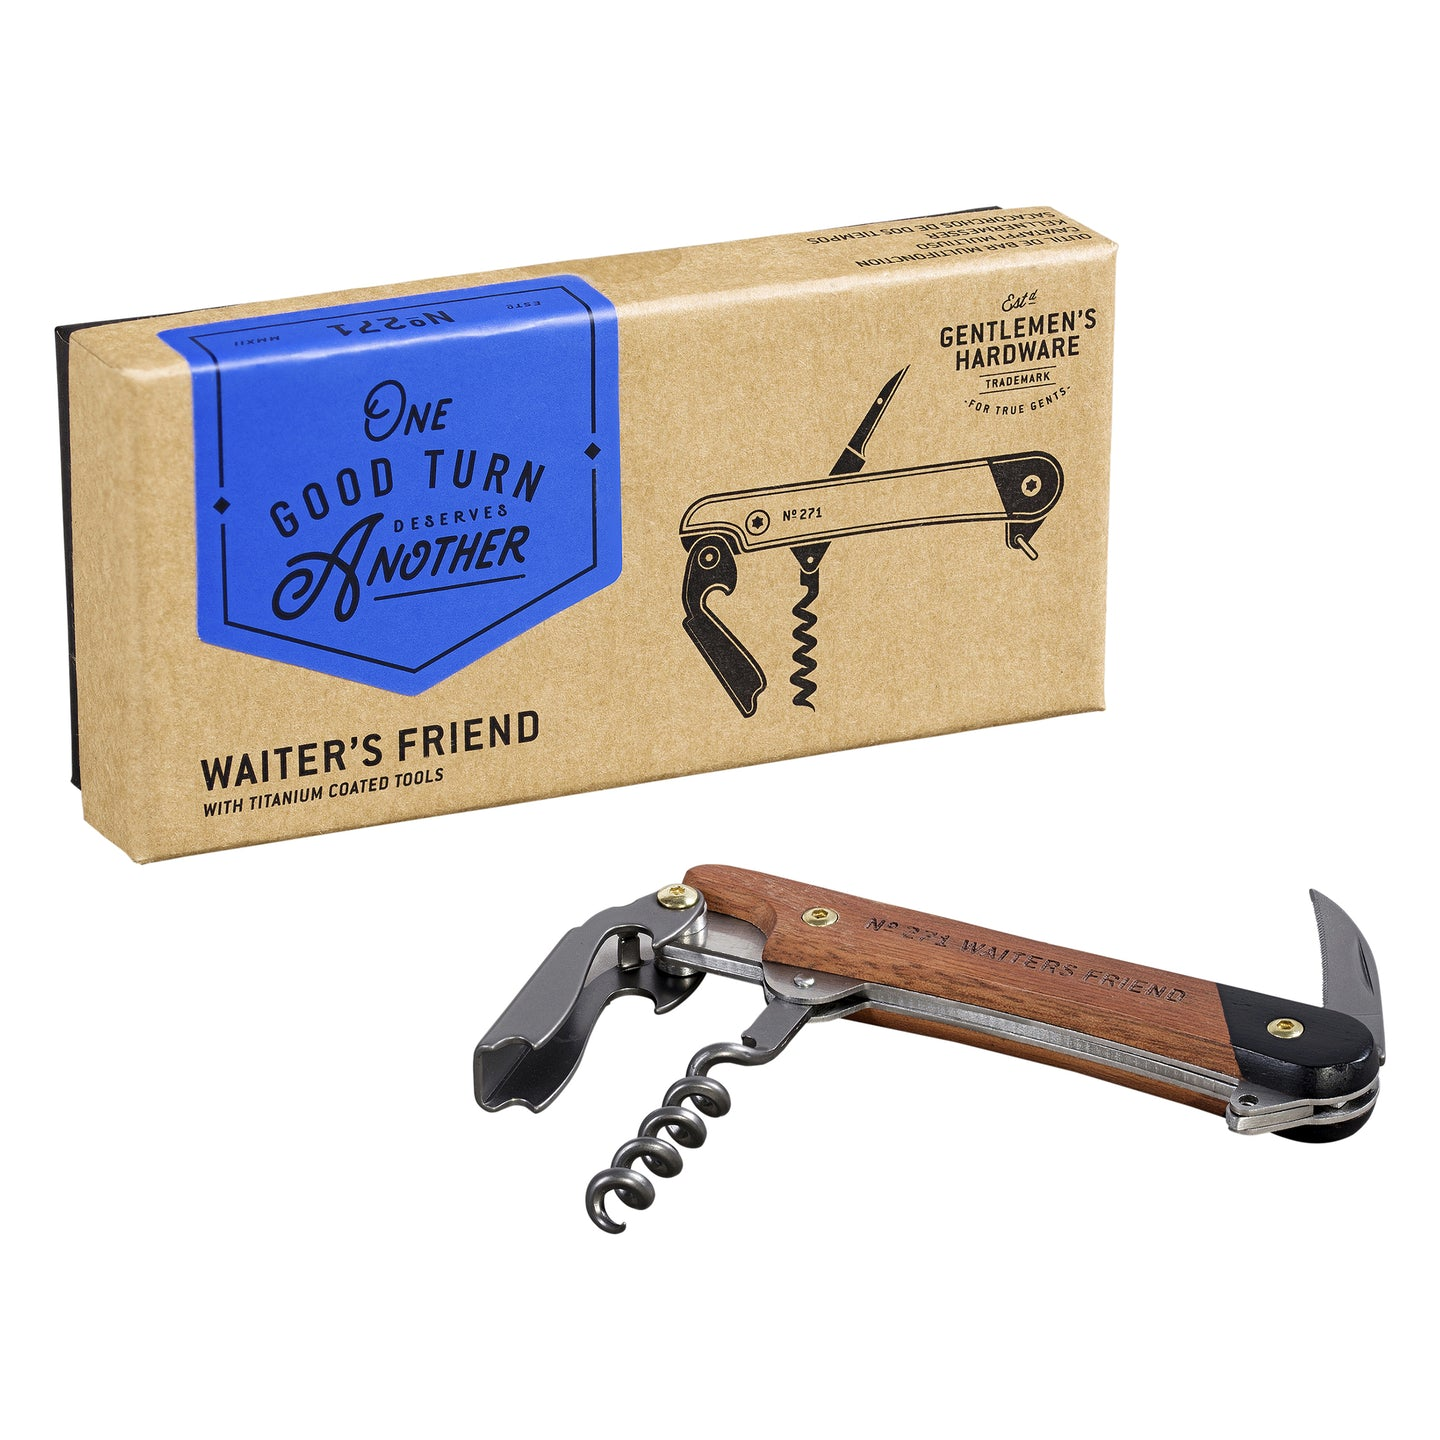 GENTLEMANS HARDWARE Waiters Friend Corkscrew Main01